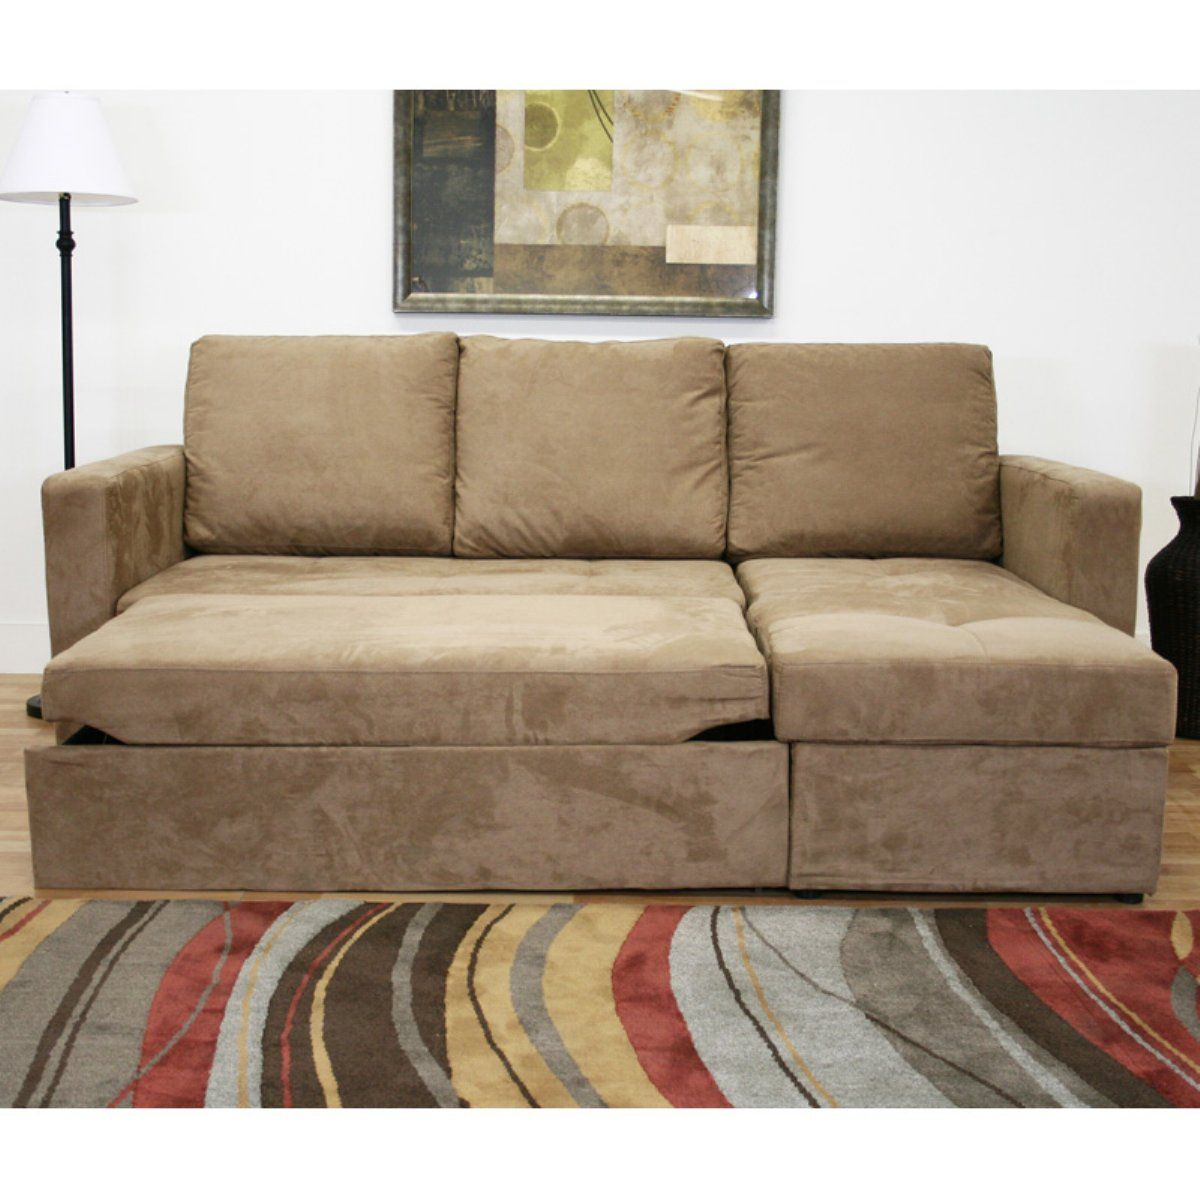 Affordable But Durable Microfiber Sectional Sofa ashley